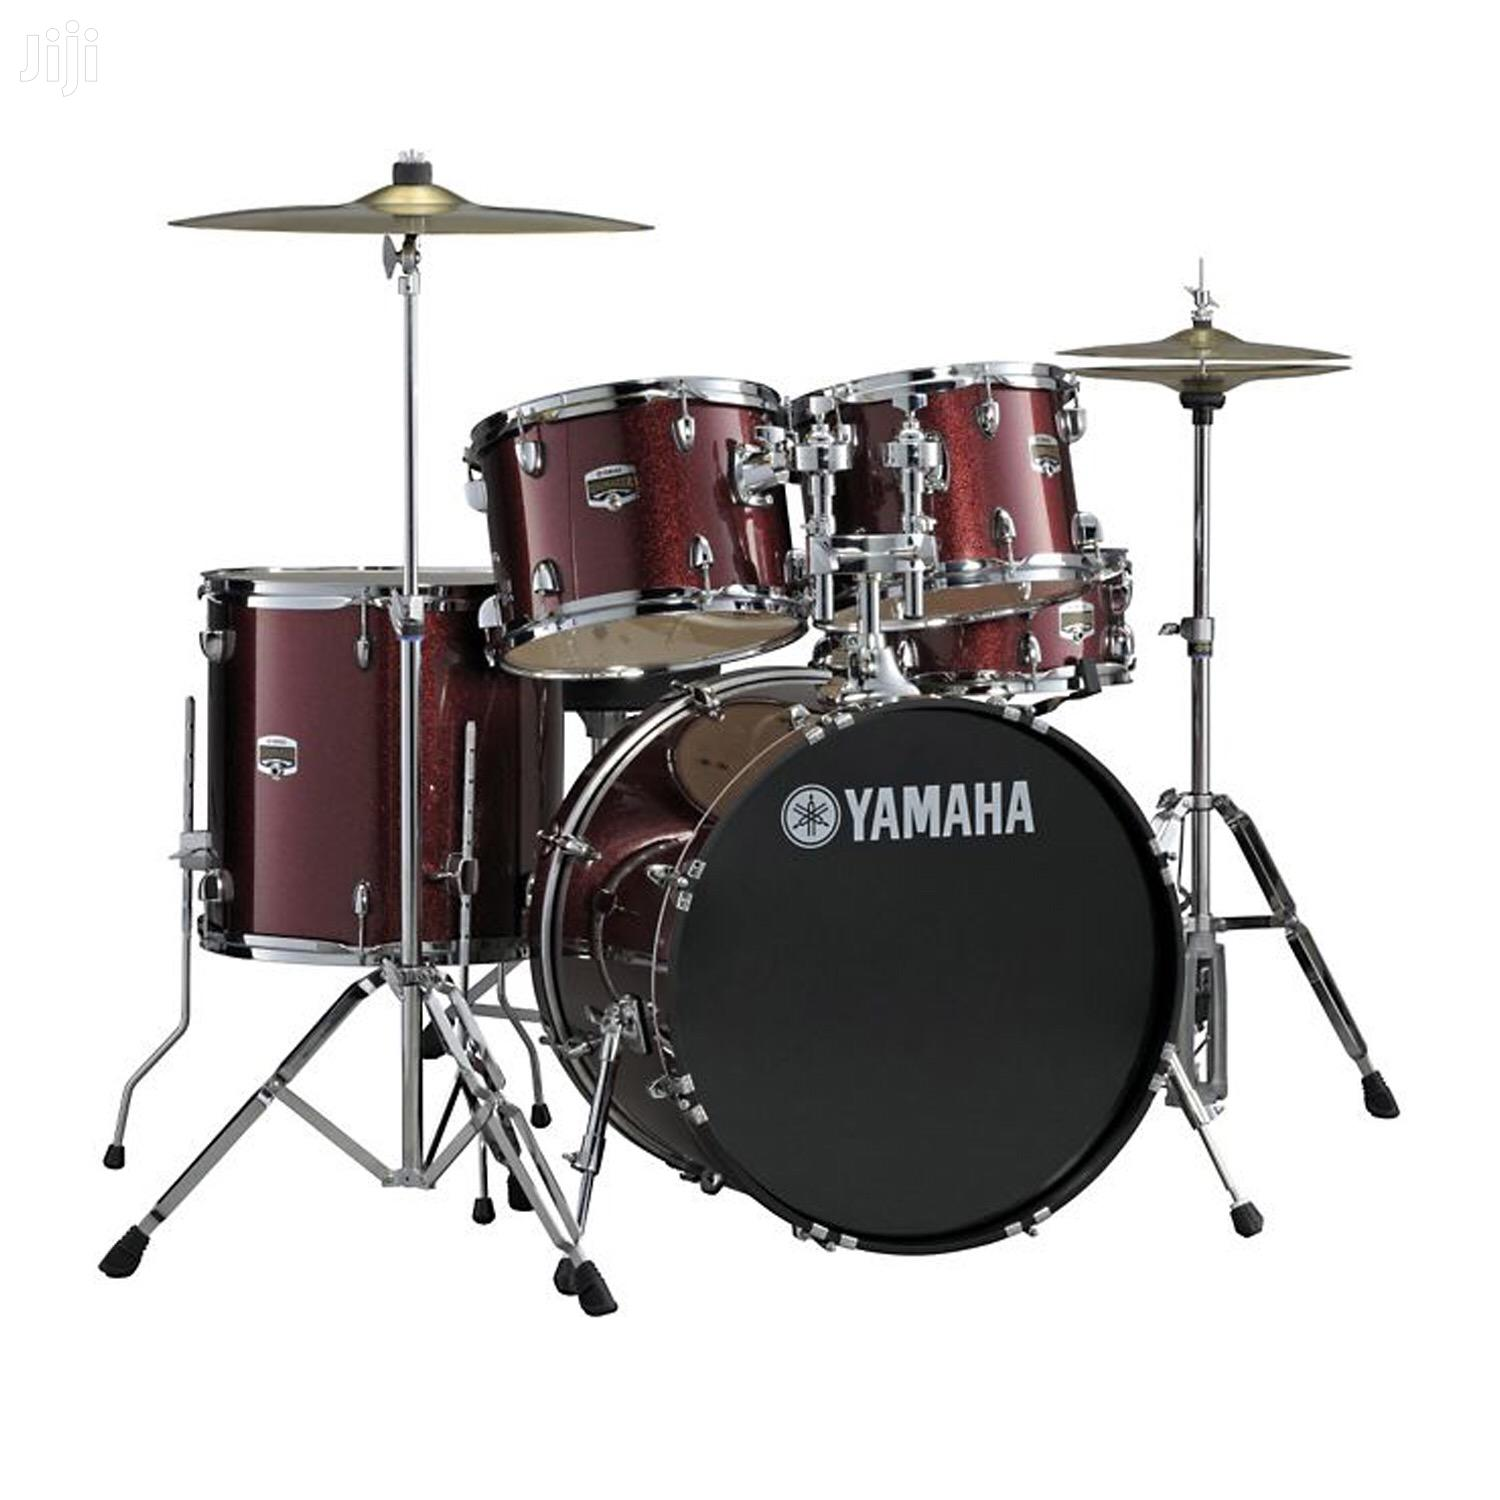 Yamaha Drums Set - High Quality